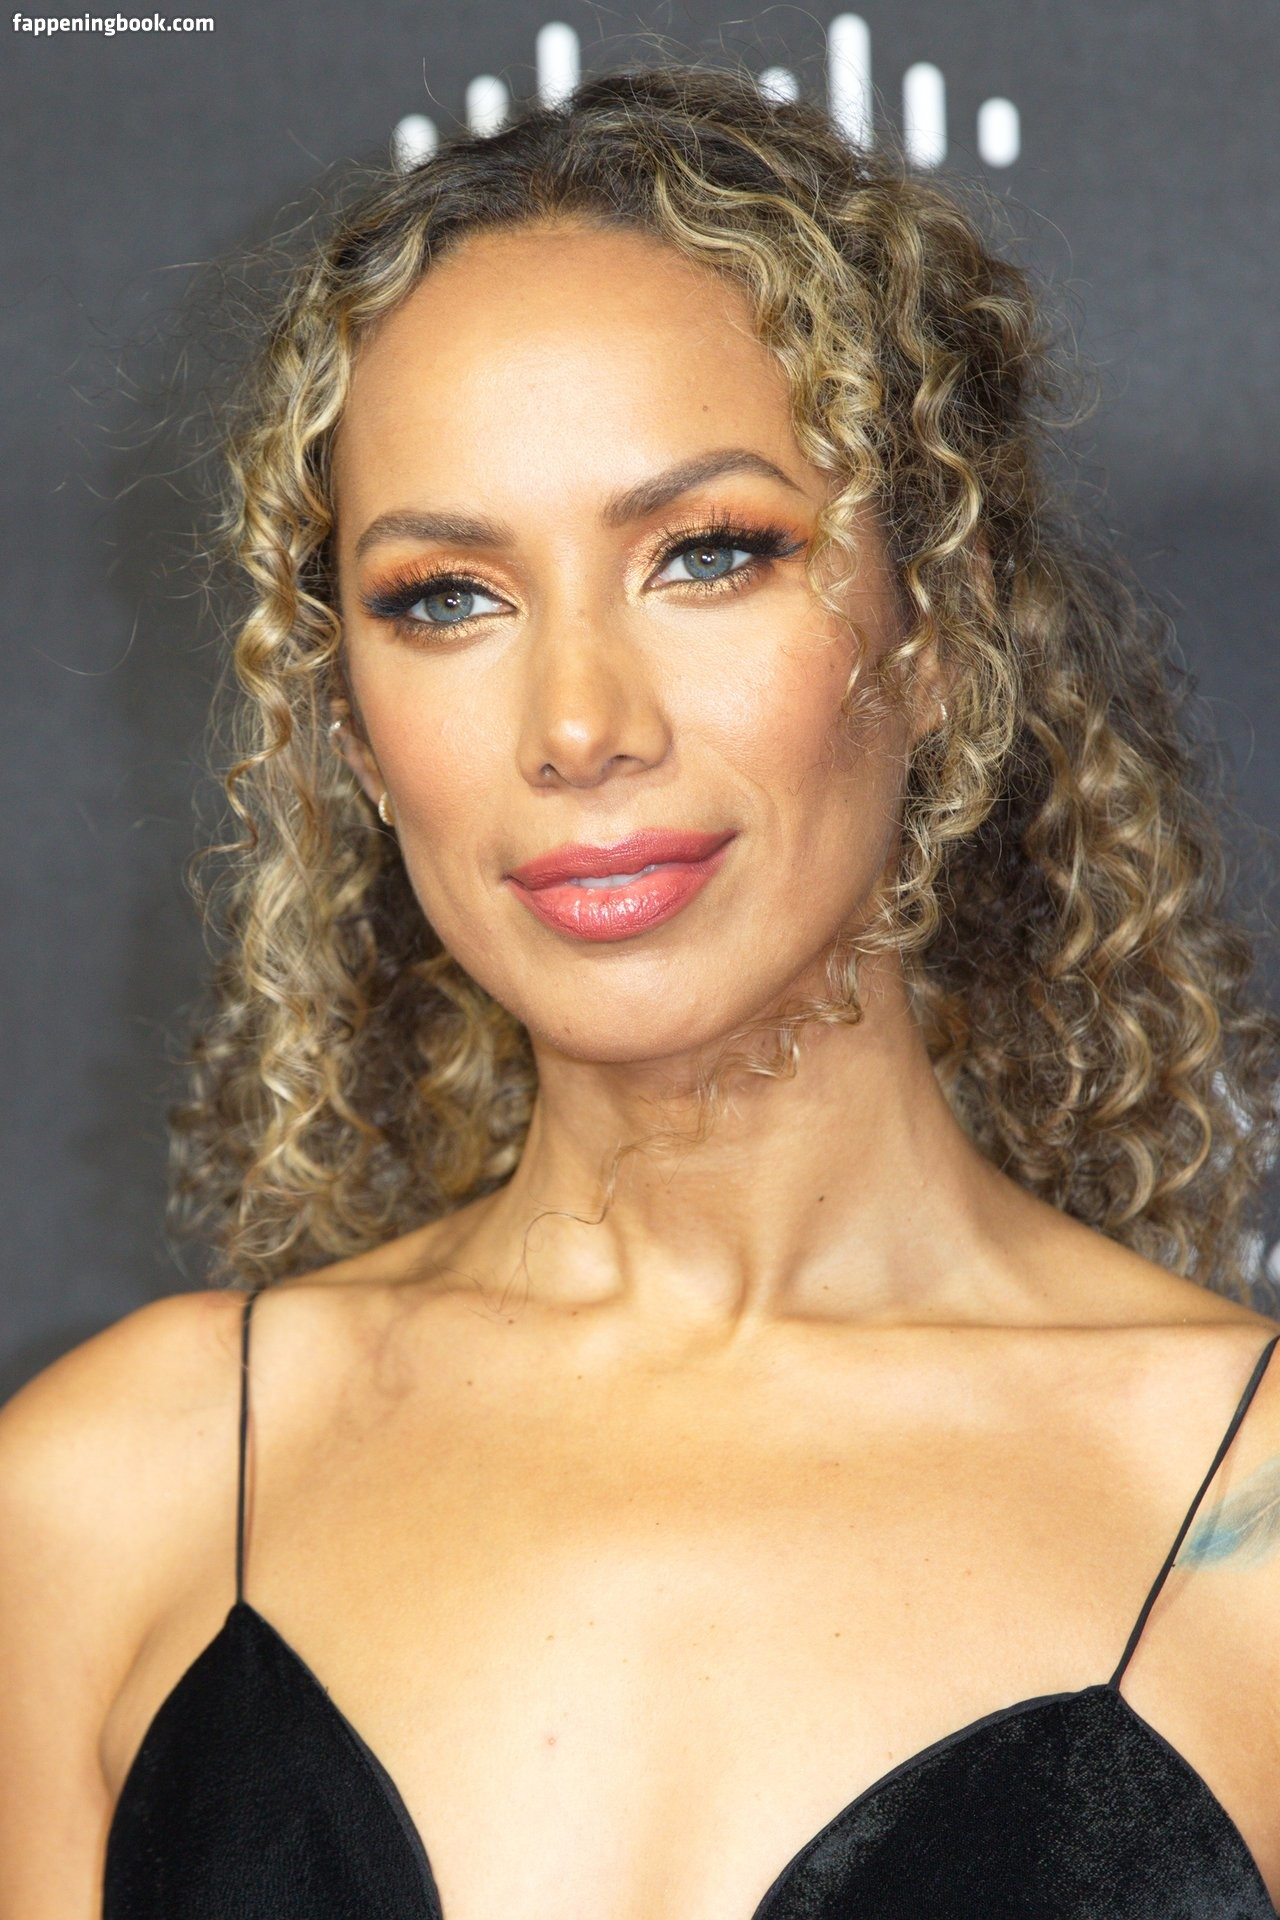 Leona Lewis Nude, Sexy, The Fappening, Uncensored - Photo